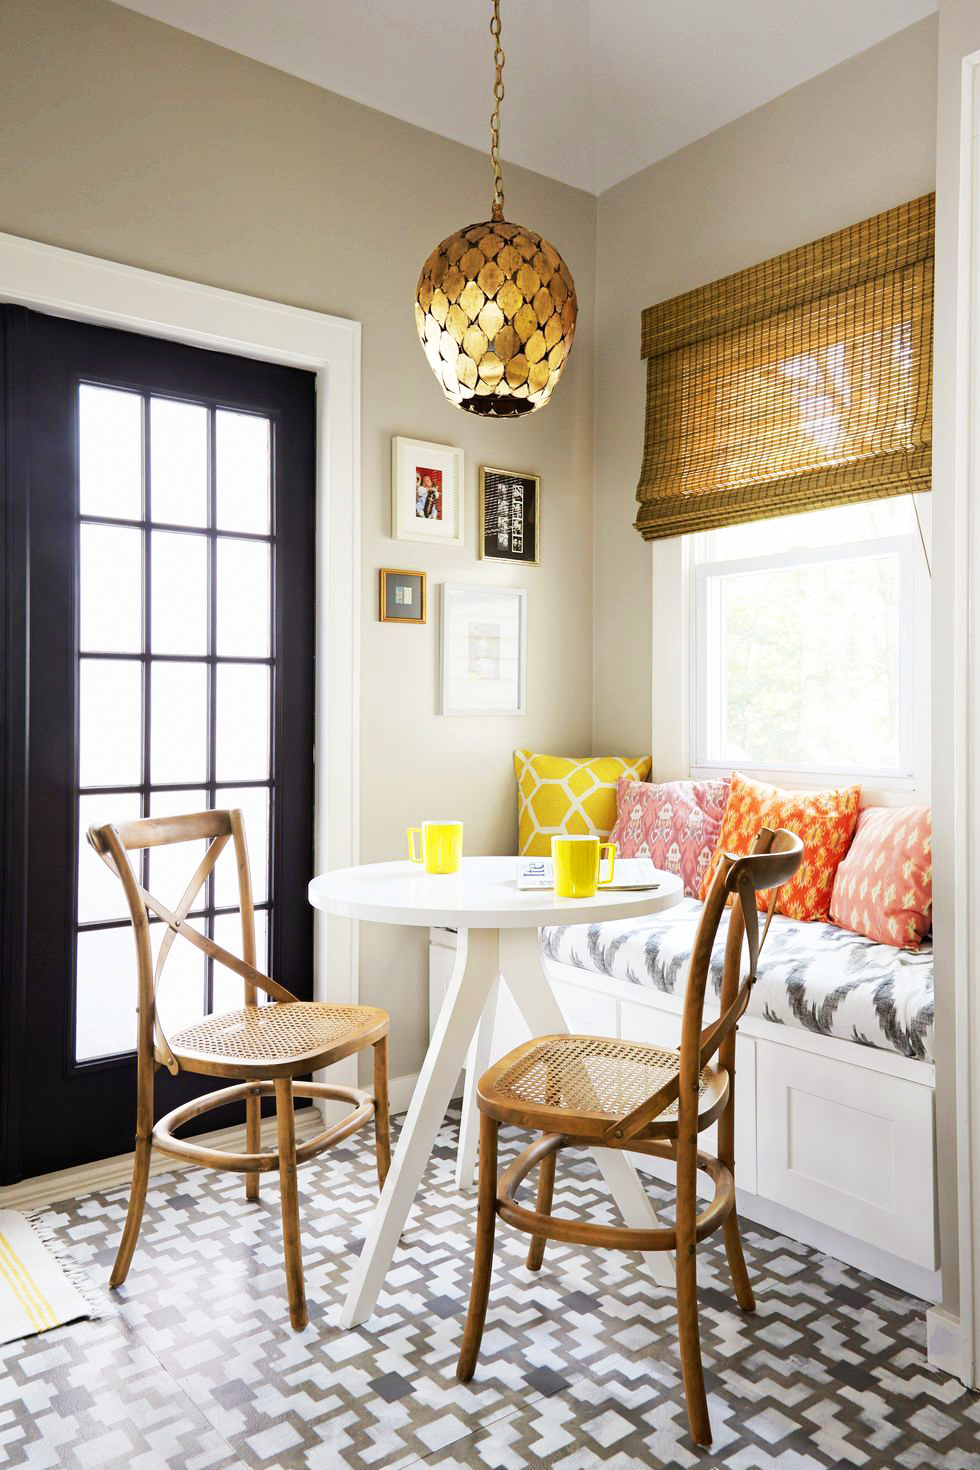 15 Small Dining Room Ideas How To Decorate Your Small Dining Room